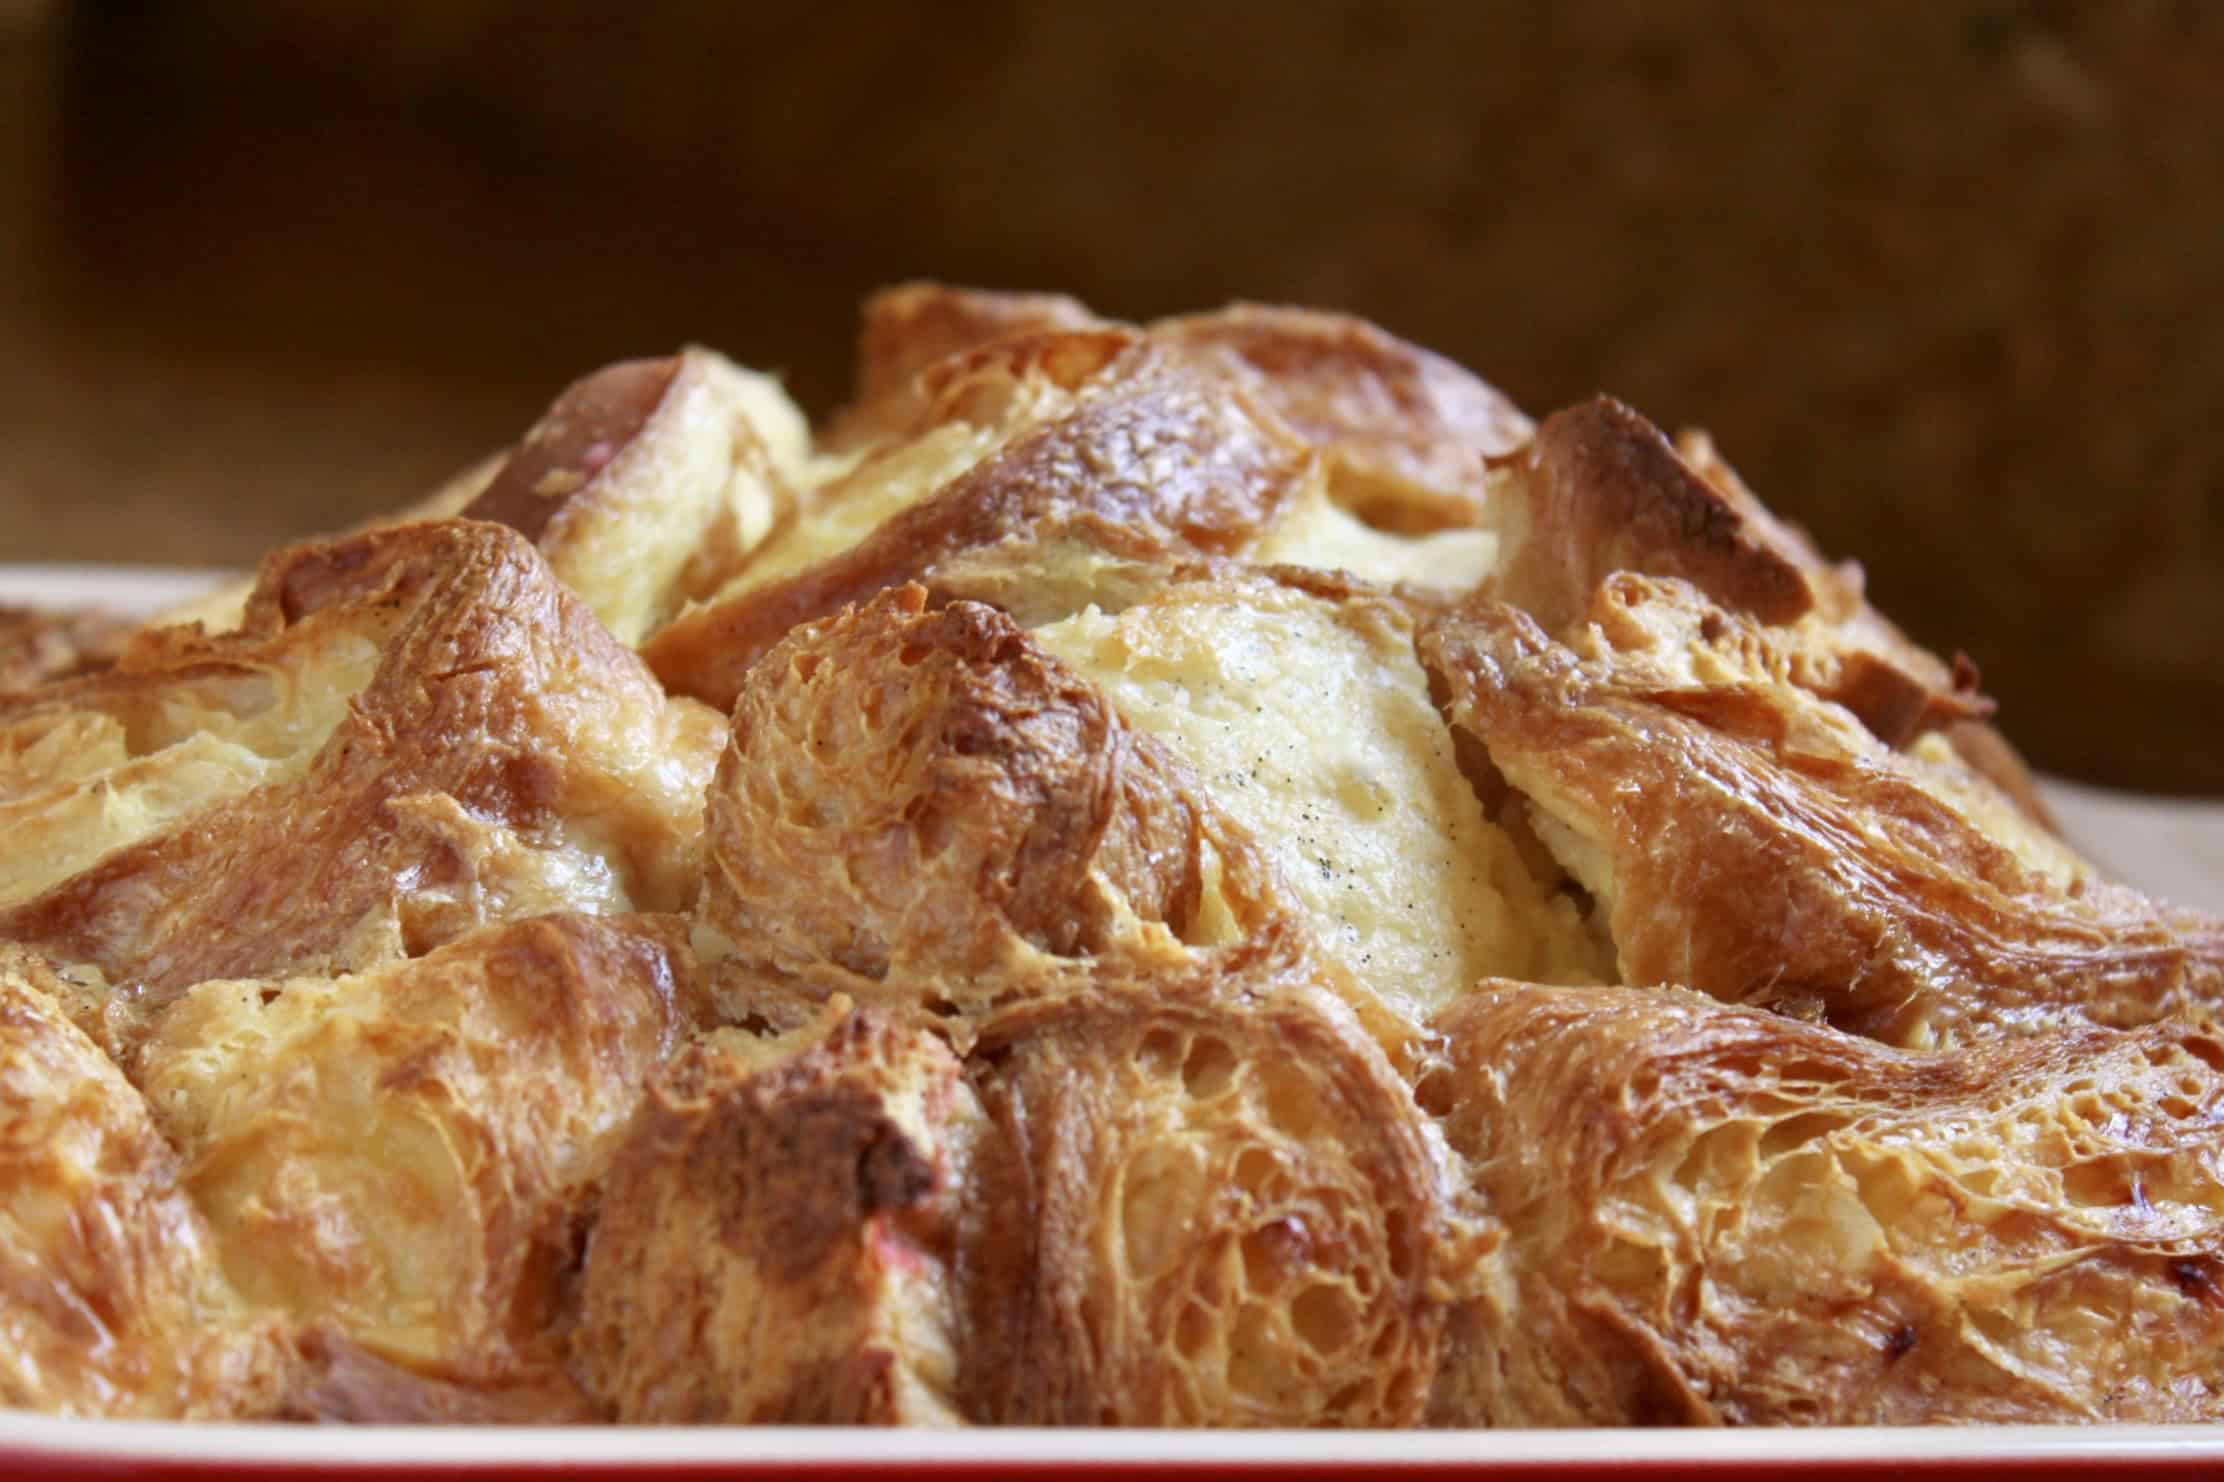 custard bread pudding out of the oven